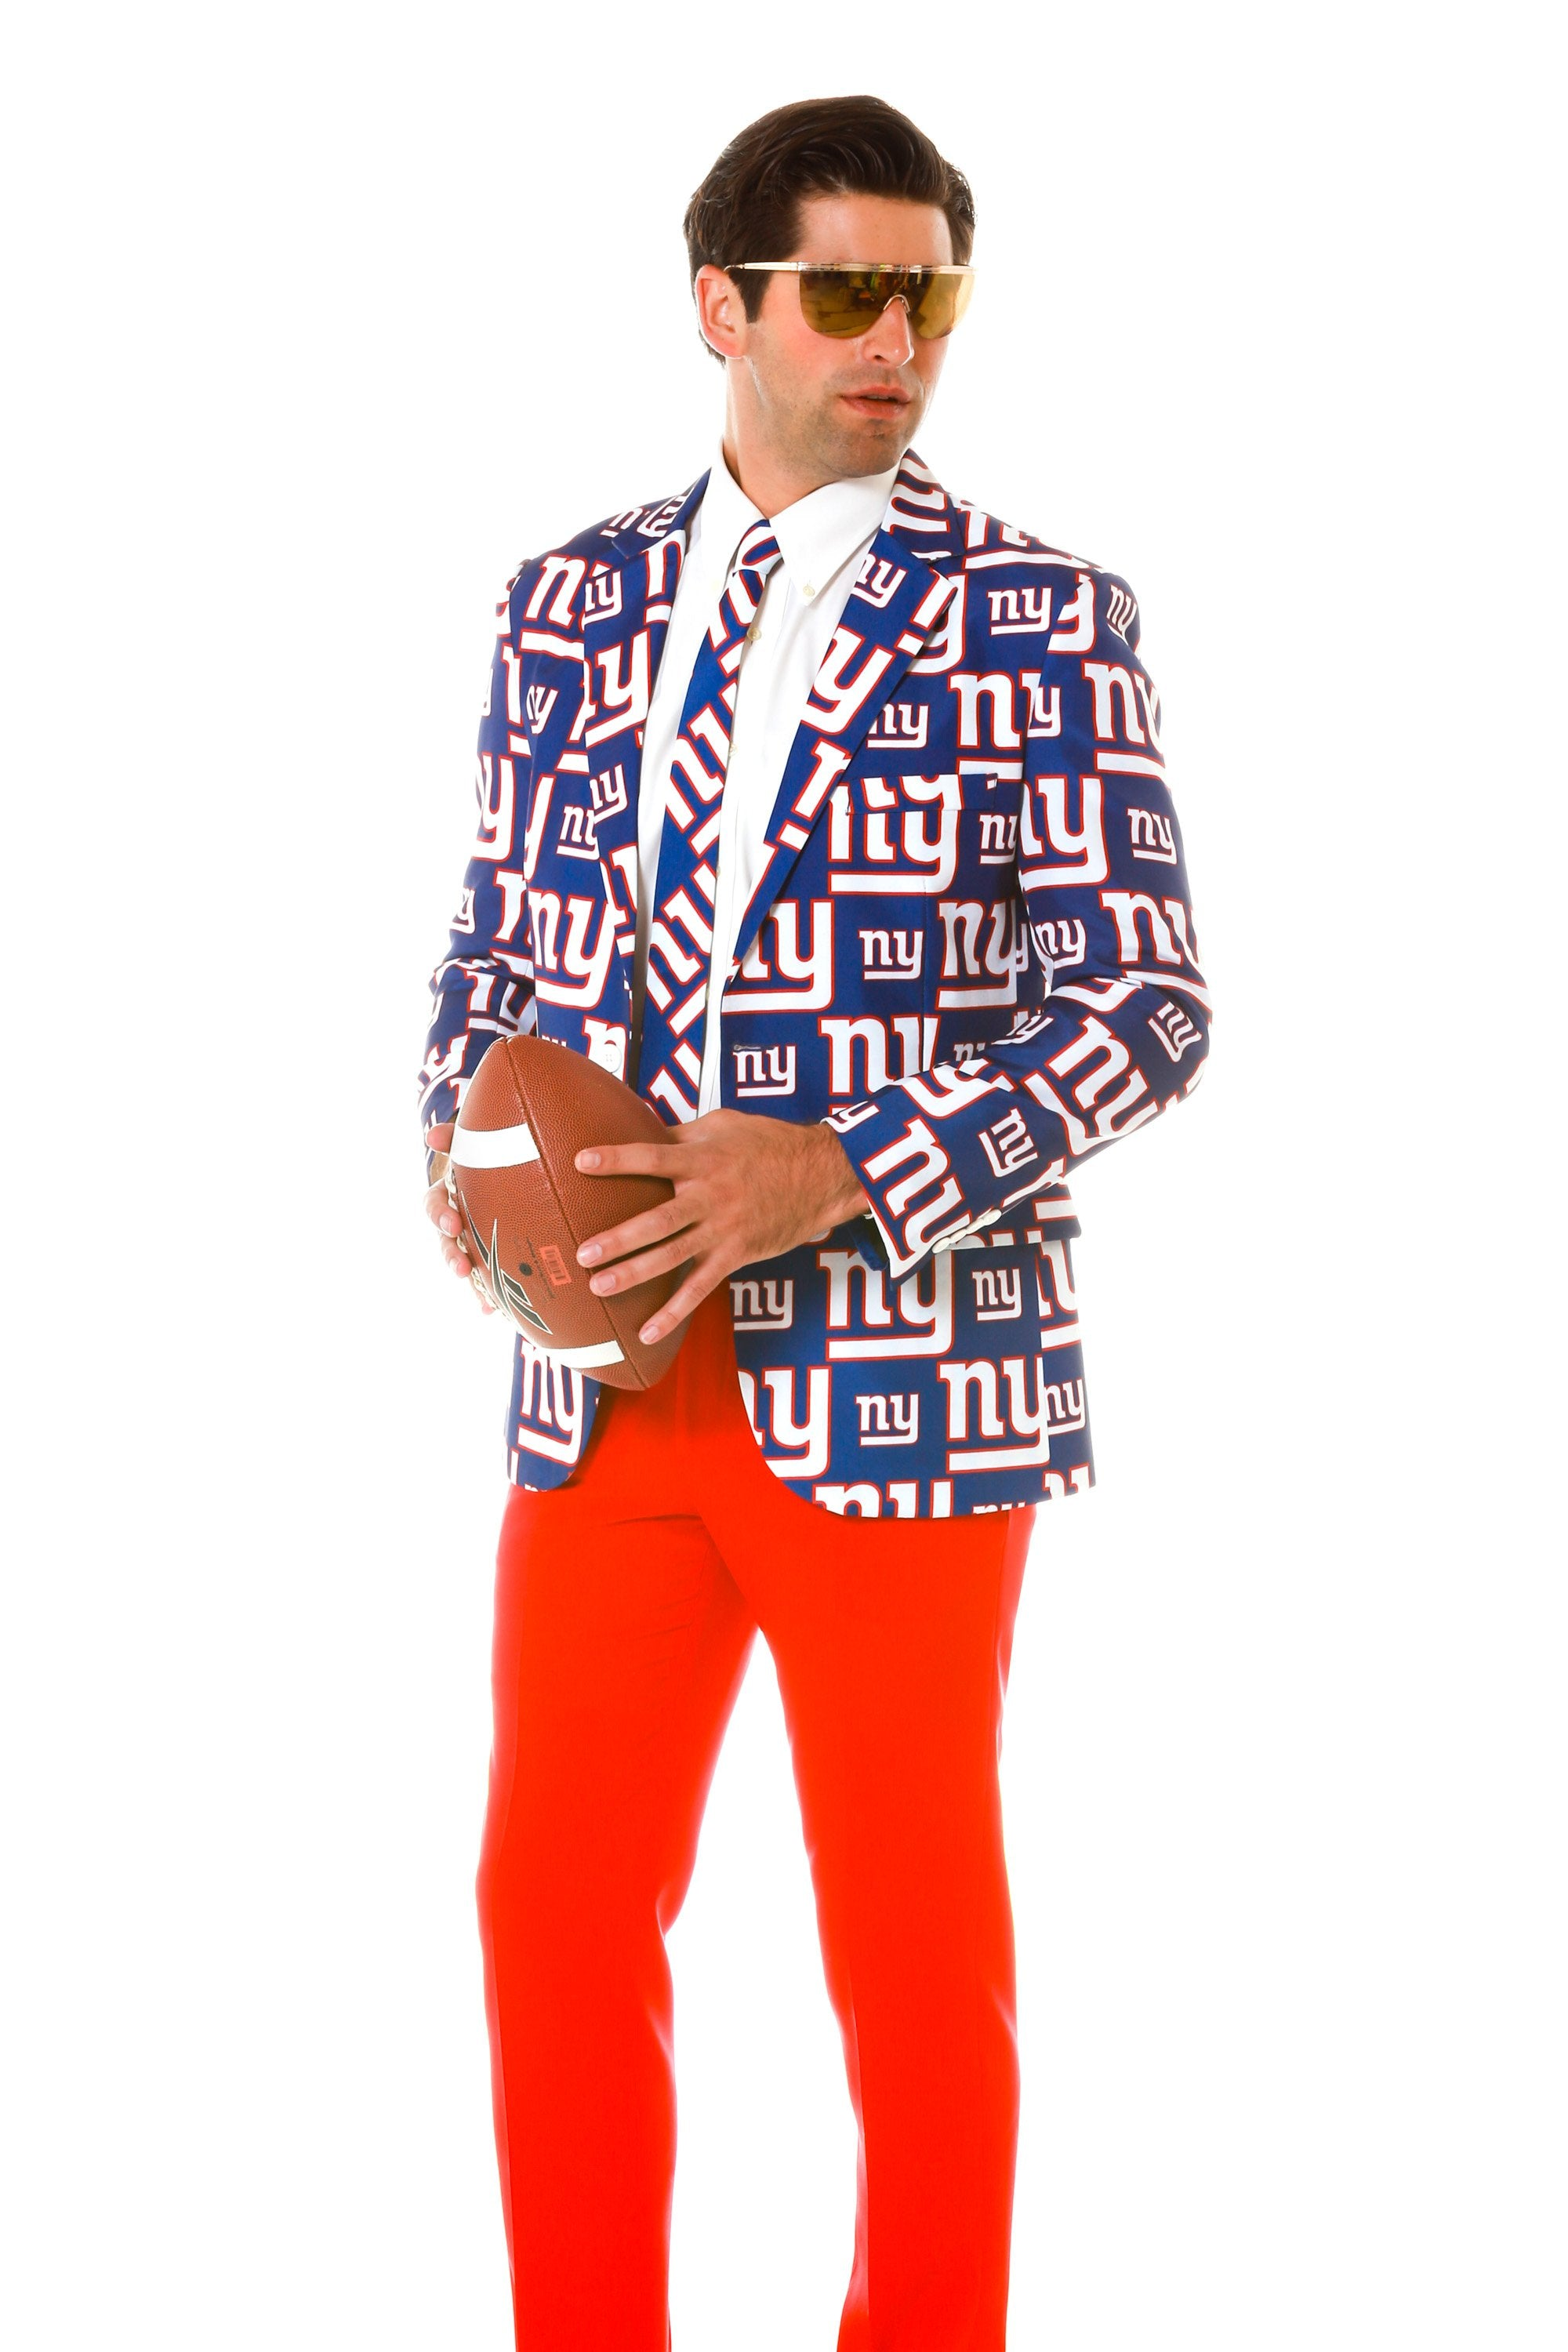 New York Giants Suit Jacket